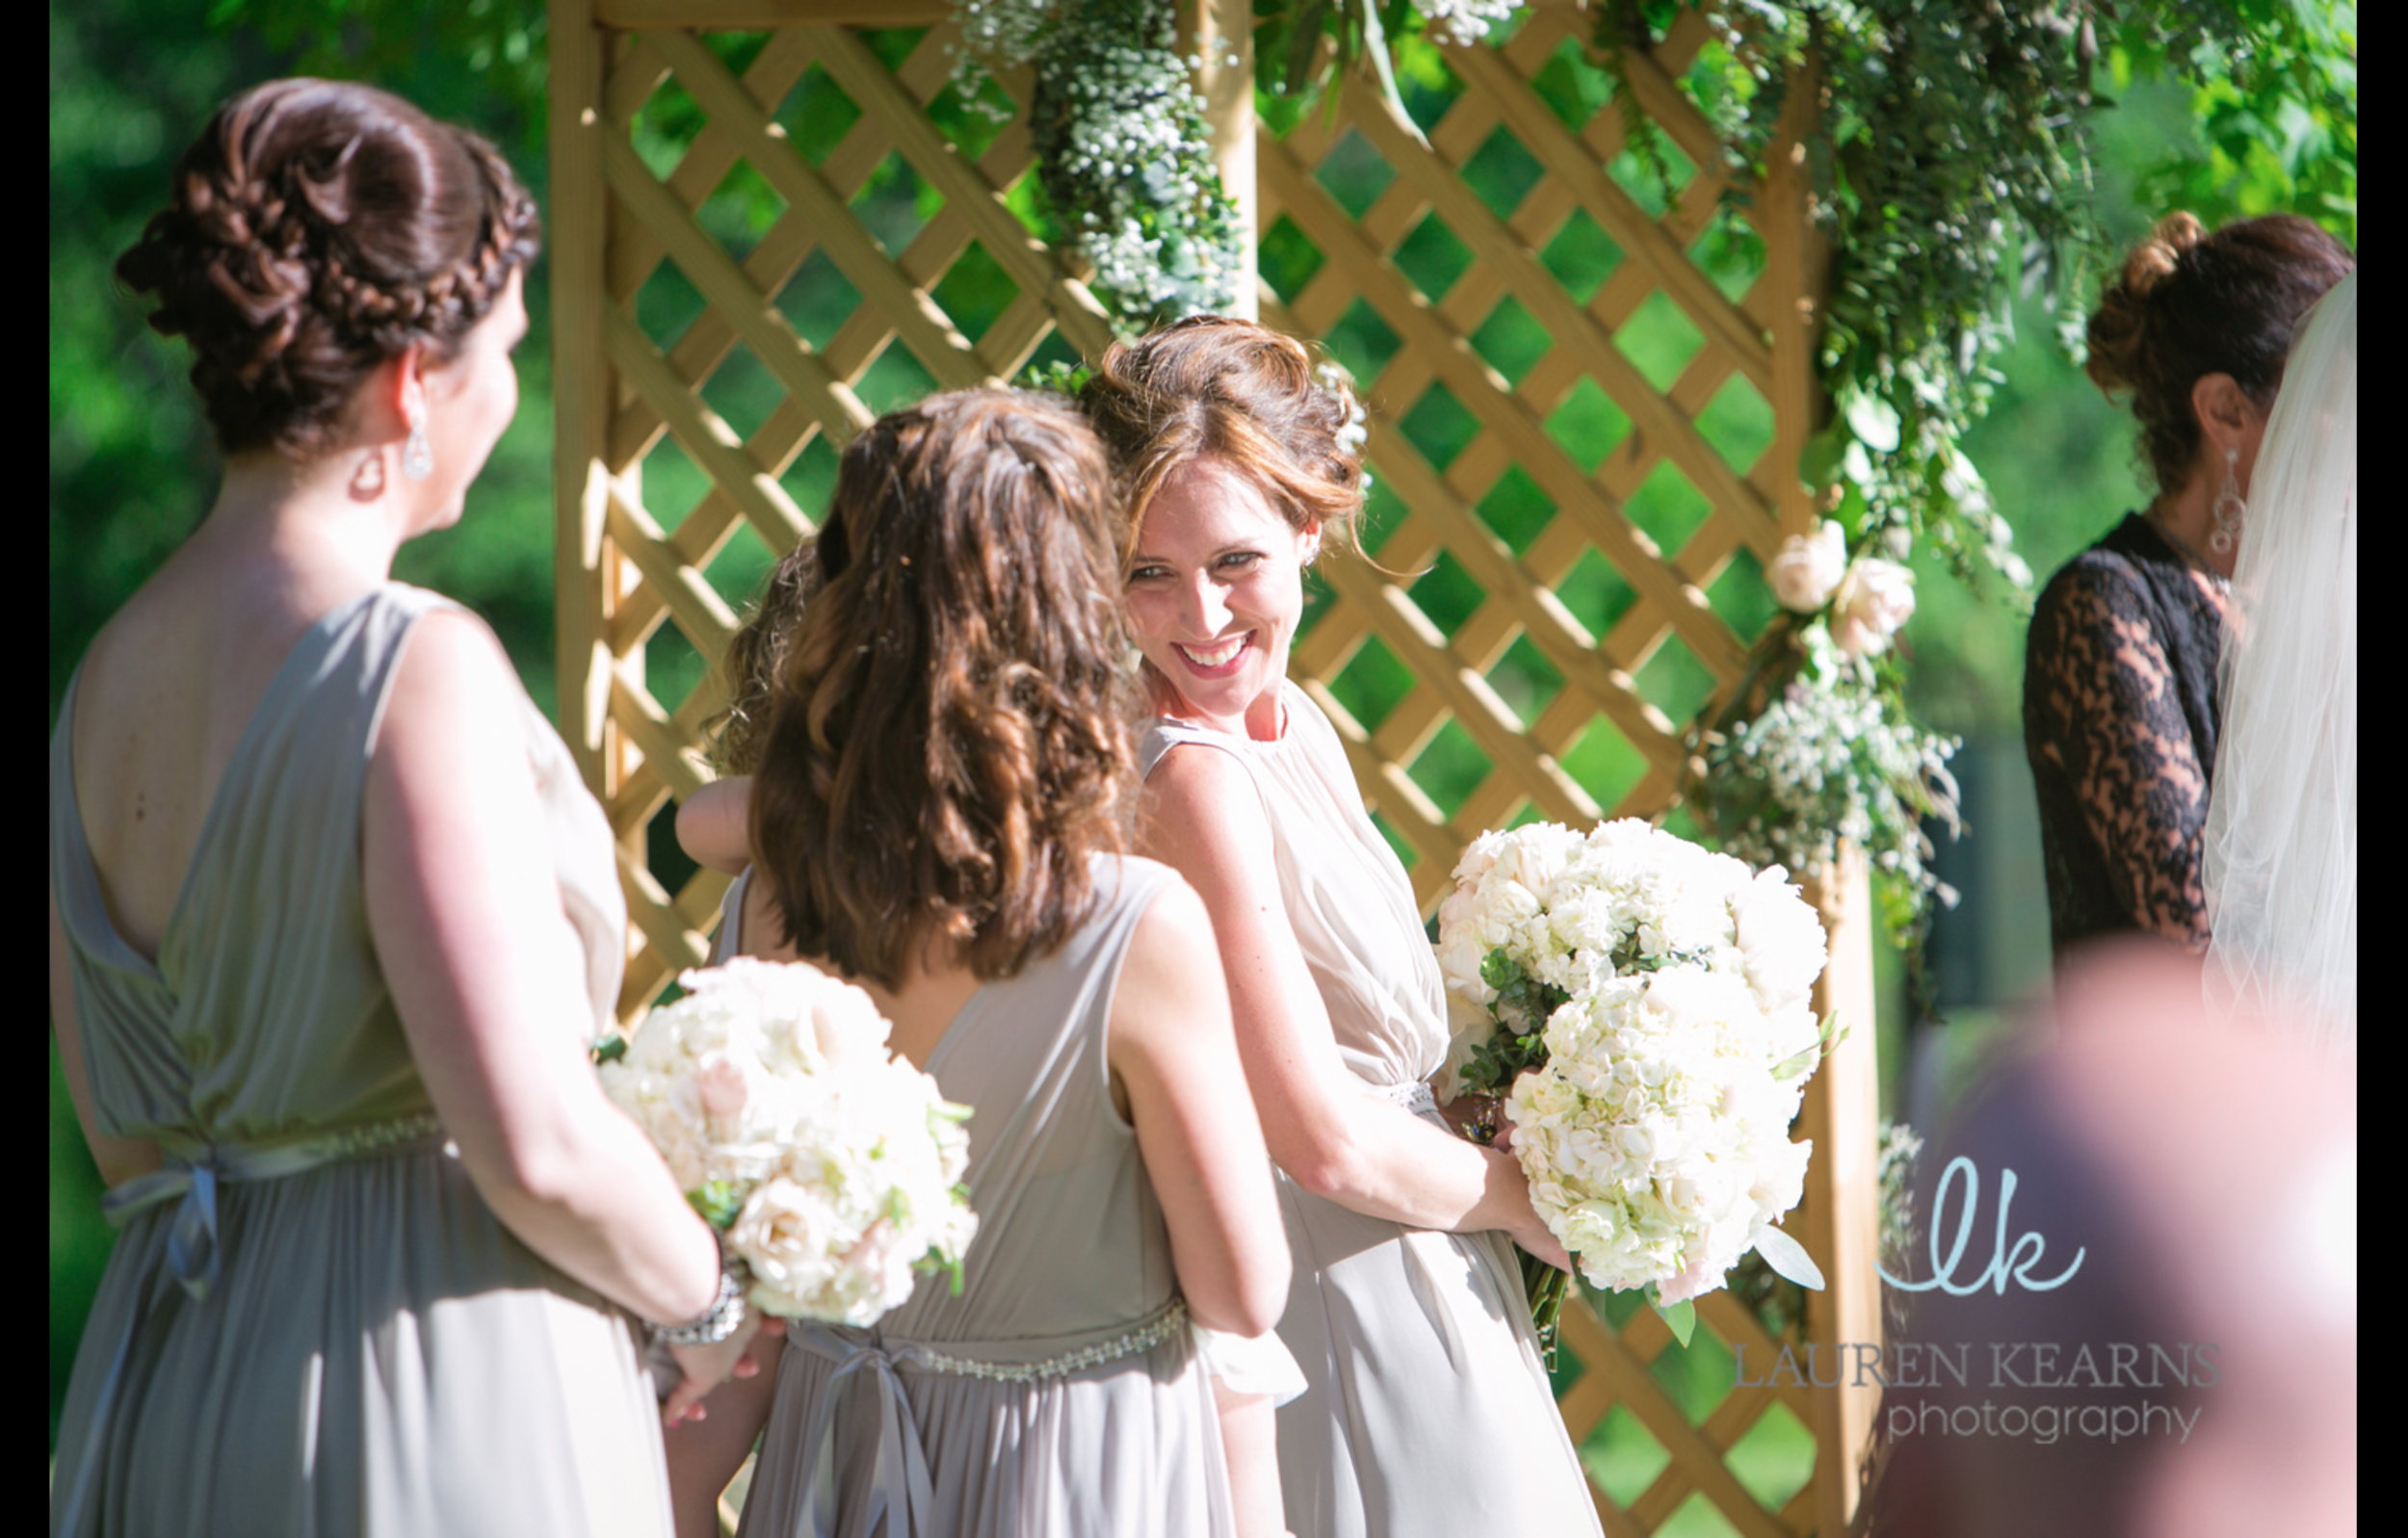 A moment of love between the bride and her maid of honor